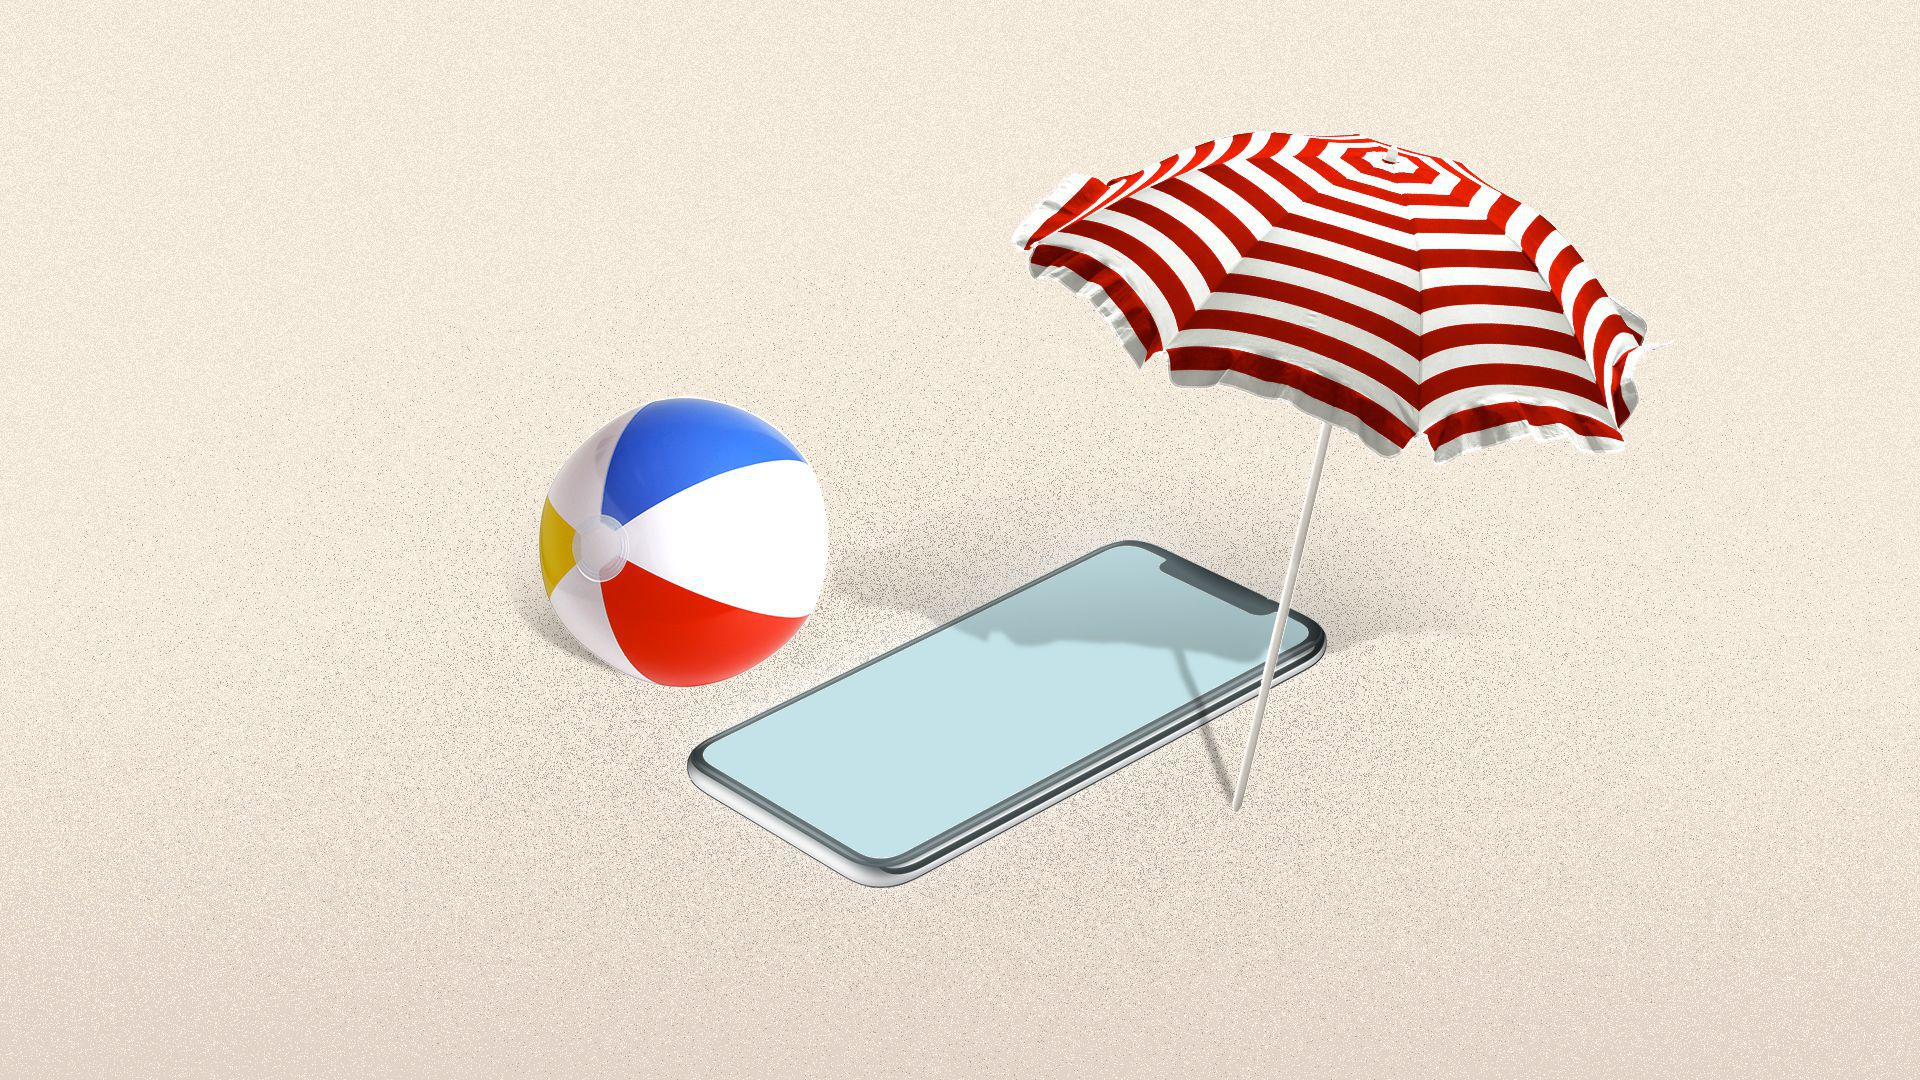 An illustration of a smartphone on a beach with an umbrella and beach ball